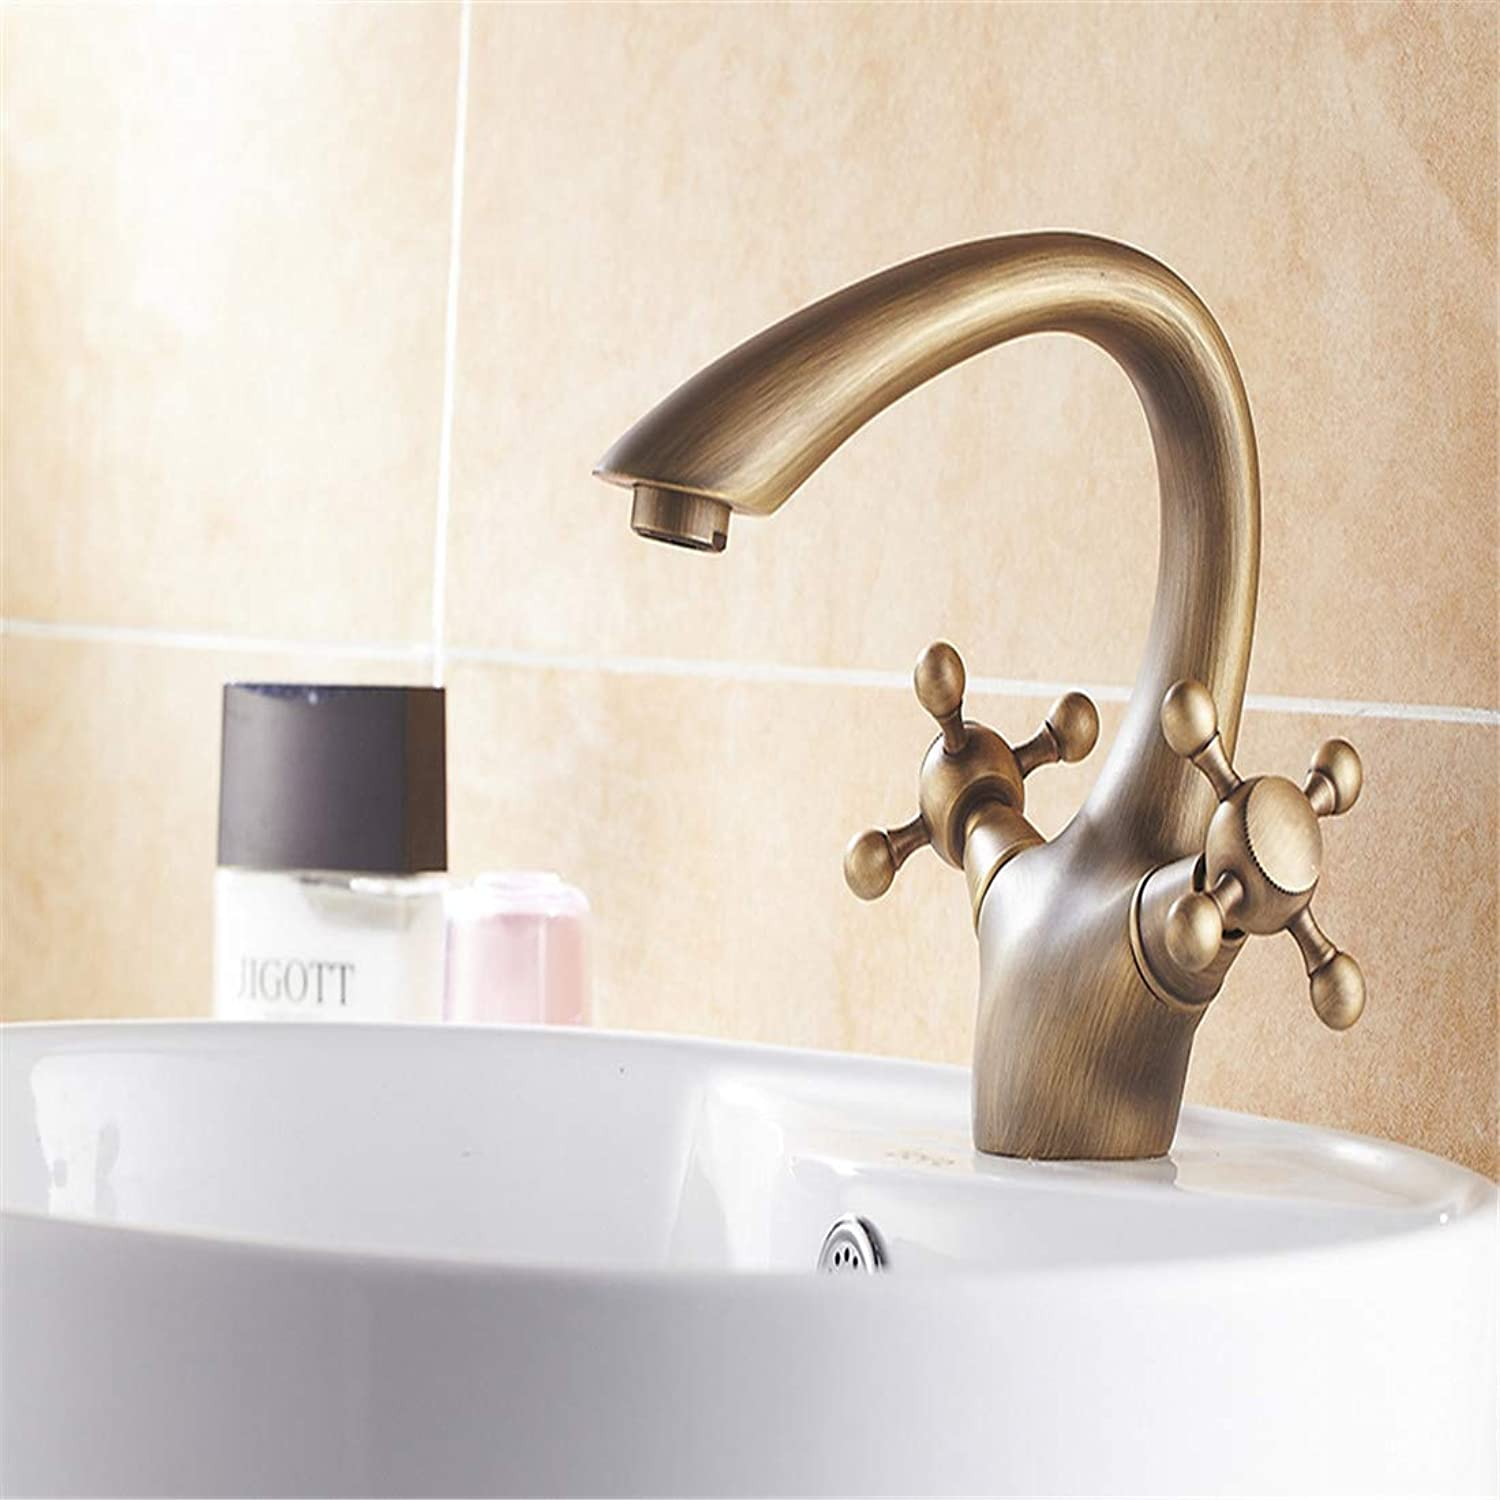 Retro Plated Hot and Cold Faucet Retroantique Bathroom Basin Faucet Brass Tap Toilet Water Faucet Hot Cold